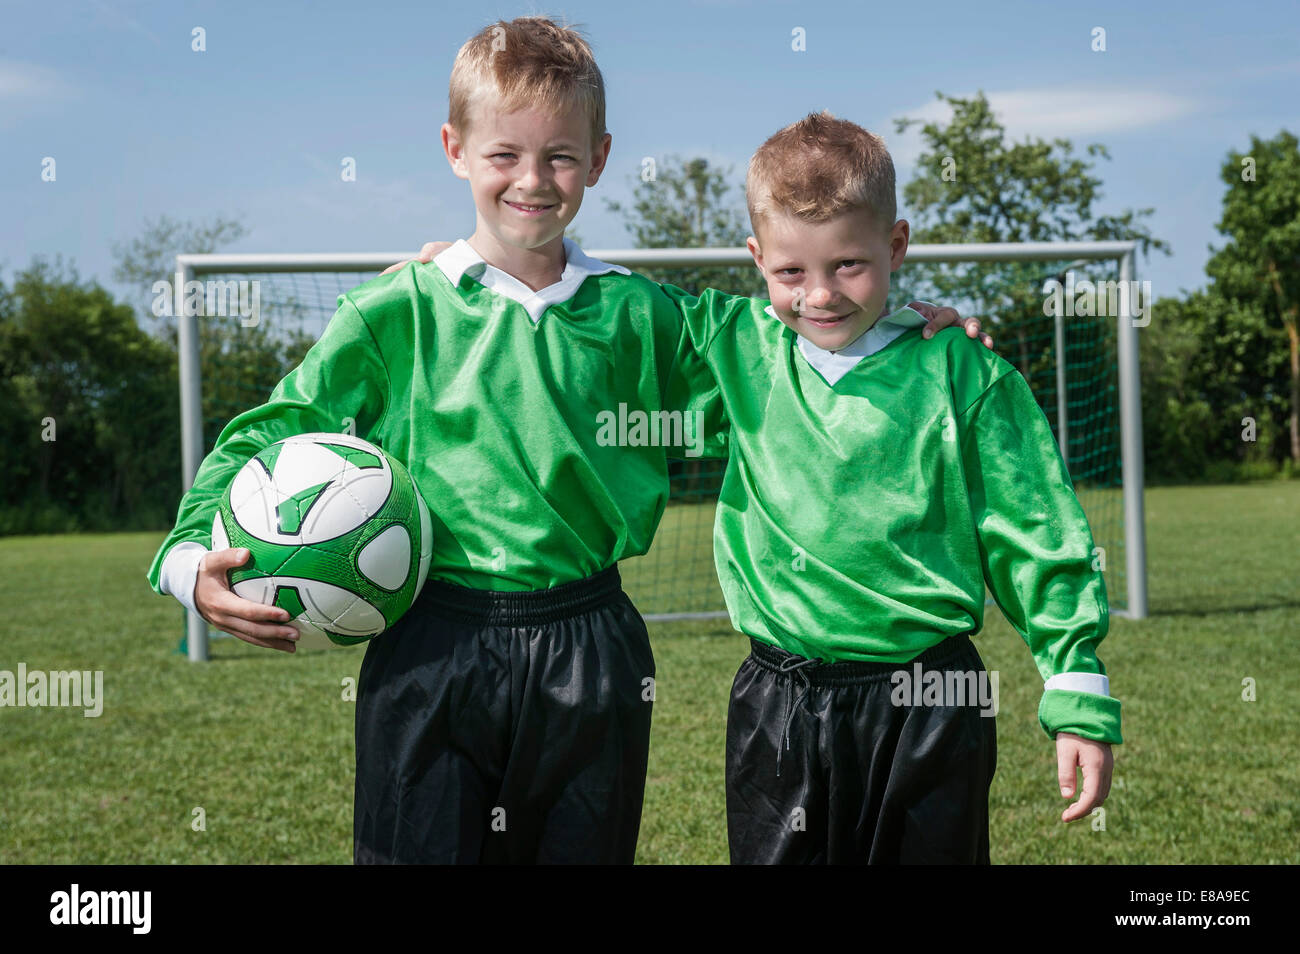 Two boys young soccer players posing portrait - Stock Image